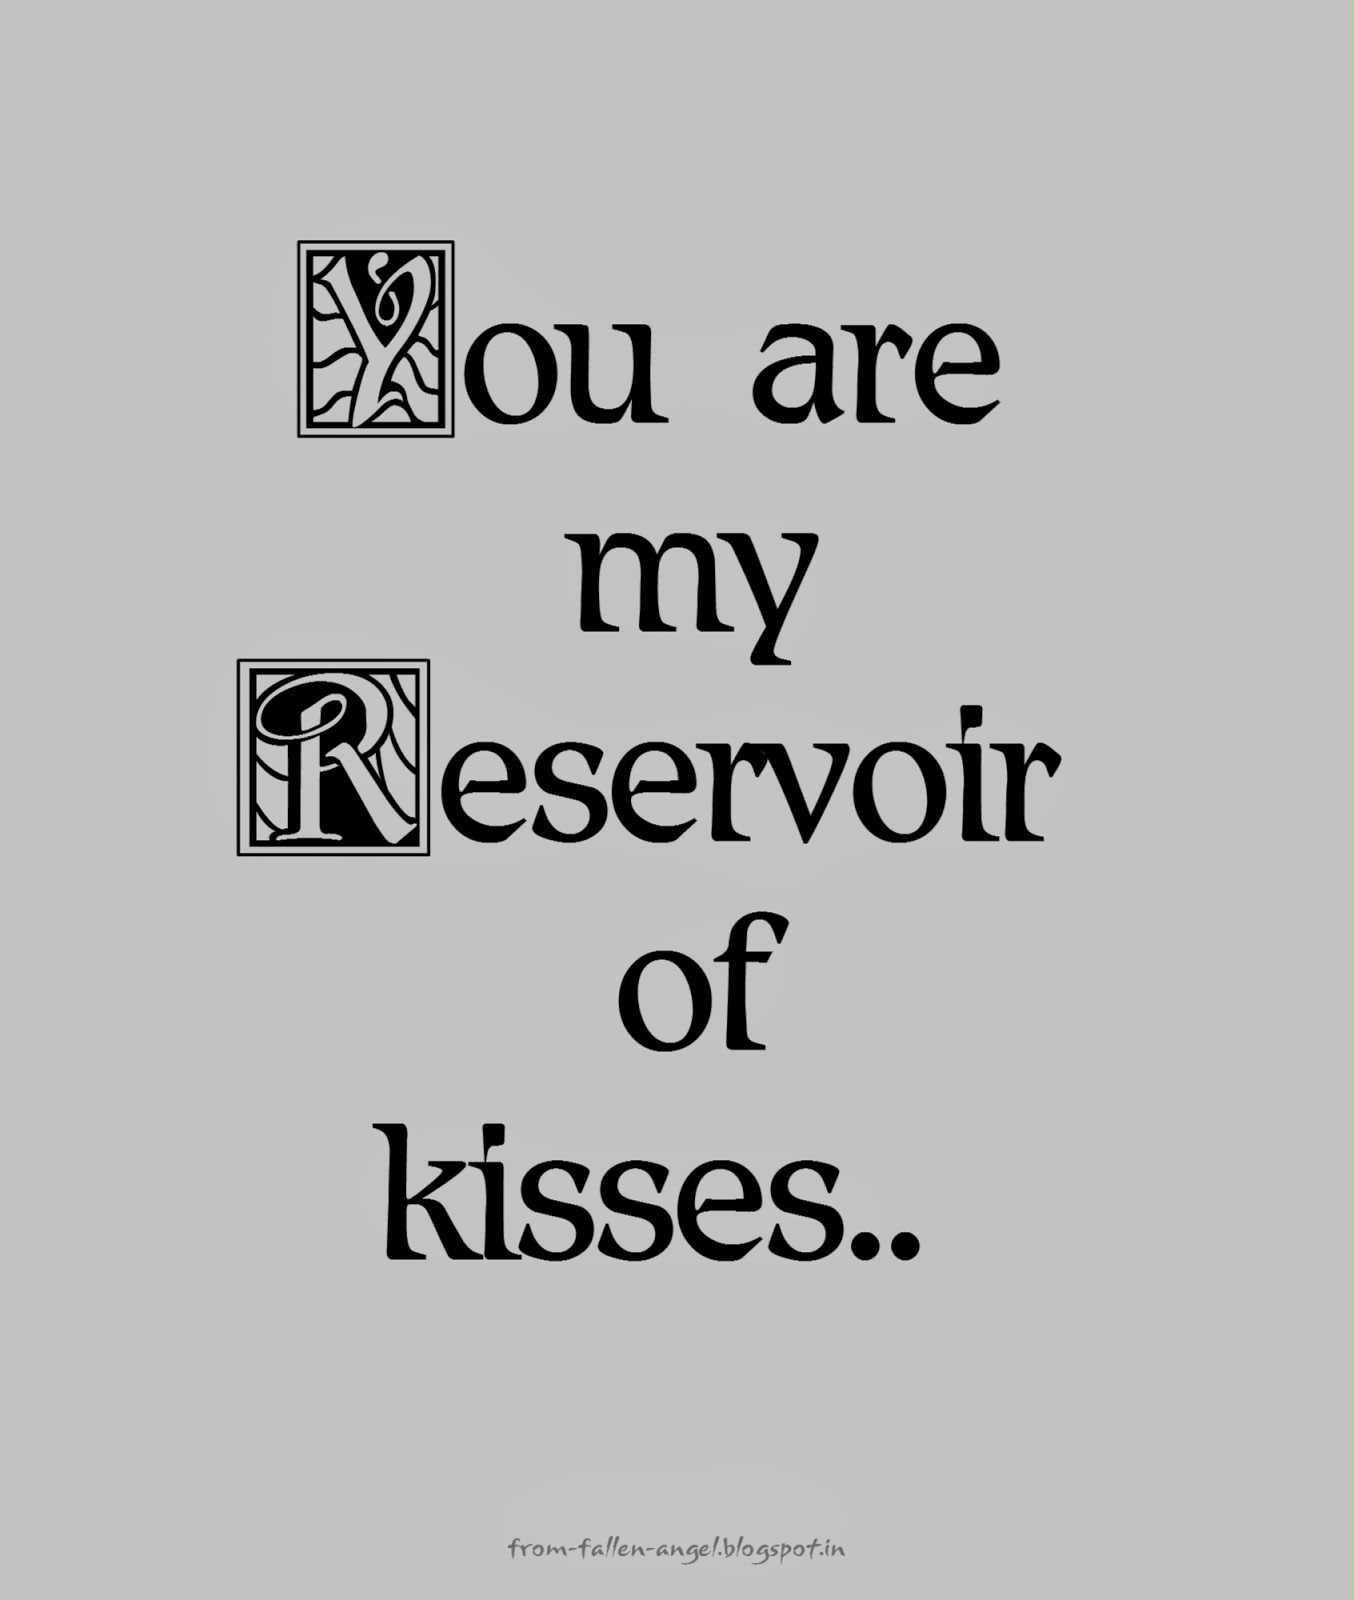 You are my Reservoir of kisses